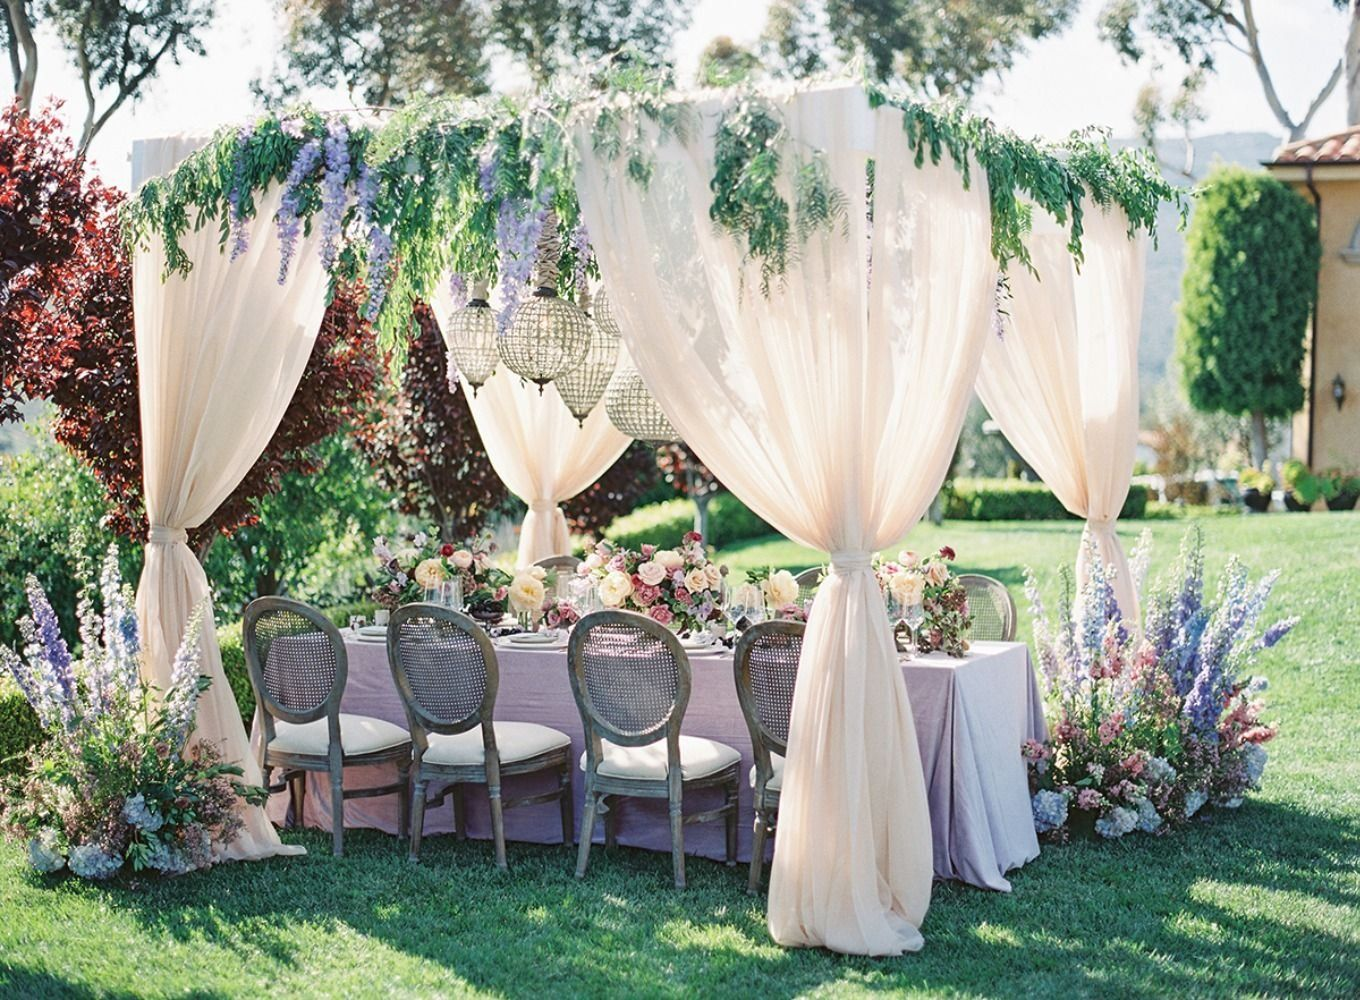 Looking for Chic Garden Party Ideas, We Have Just The Thing | 1000